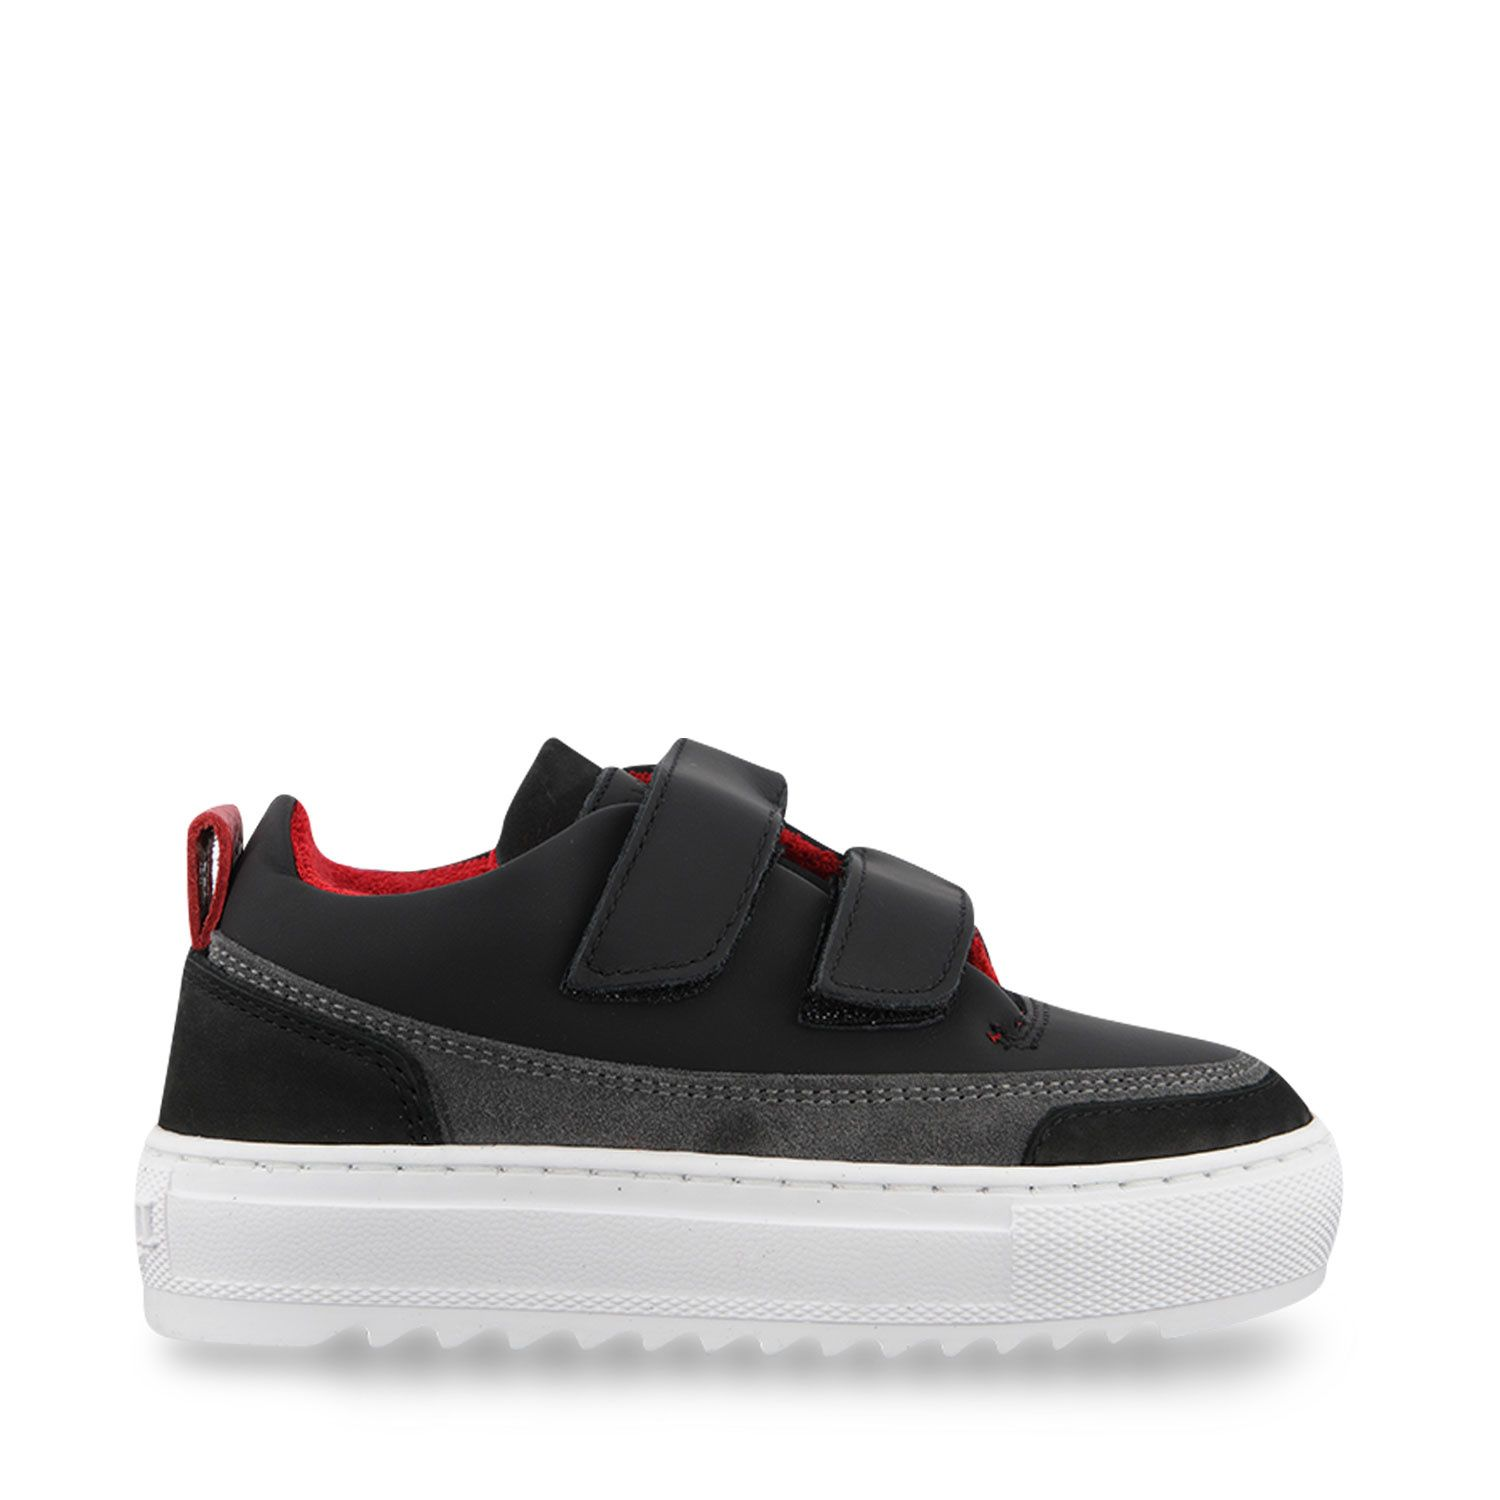 Picture of Mason Garments BSS2135A kids sneakers black